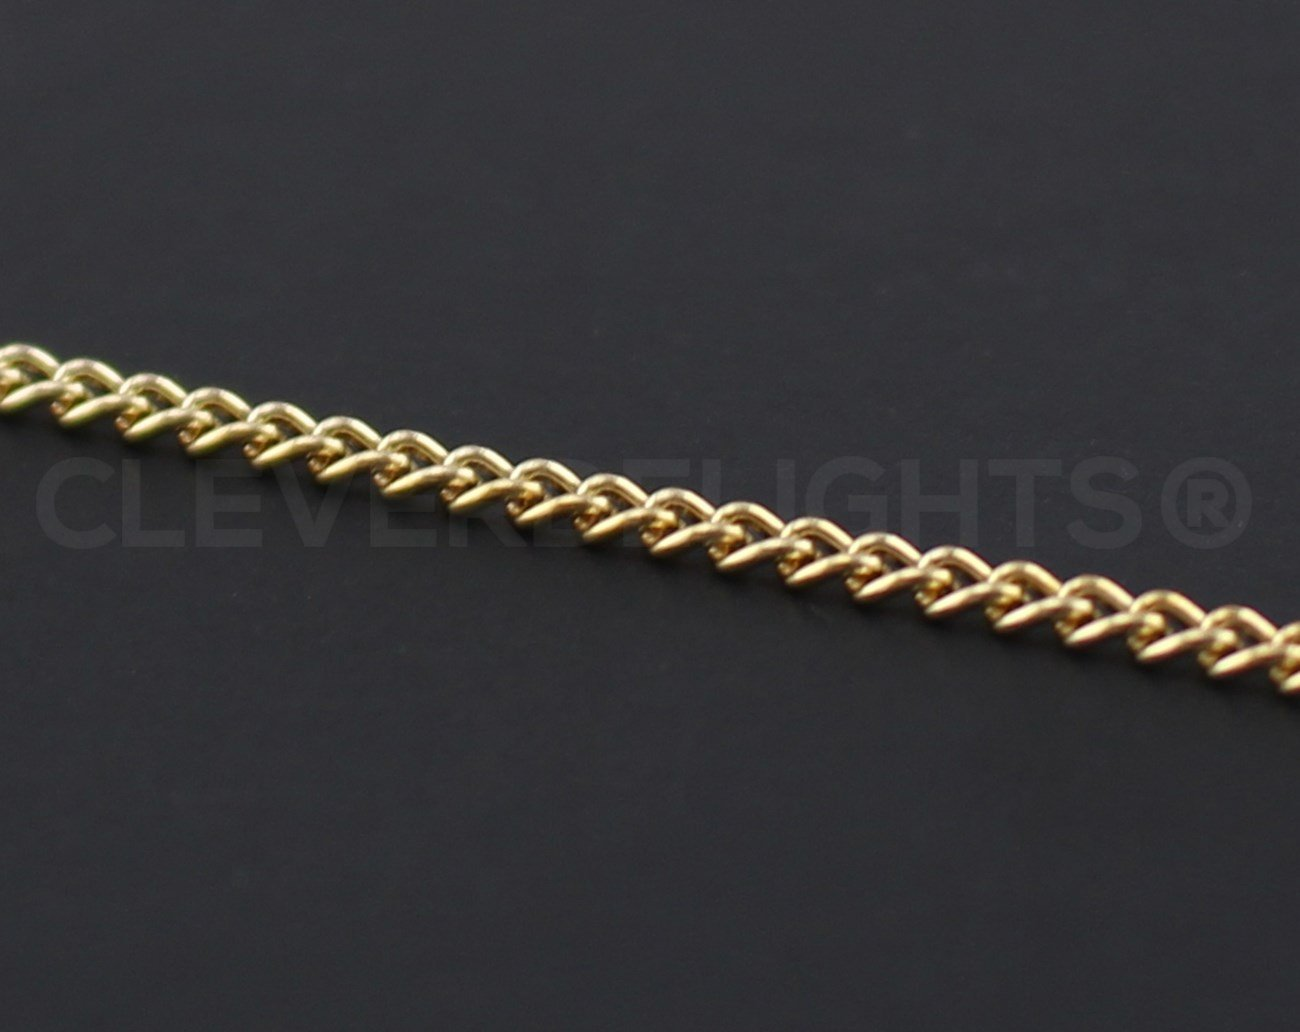 CleverDelights Curb Chain Spool - 2.2x3mm Link - Gold Color - 30 Feet - Bulk Jewelry Roll by CleverDelights (Image #3)